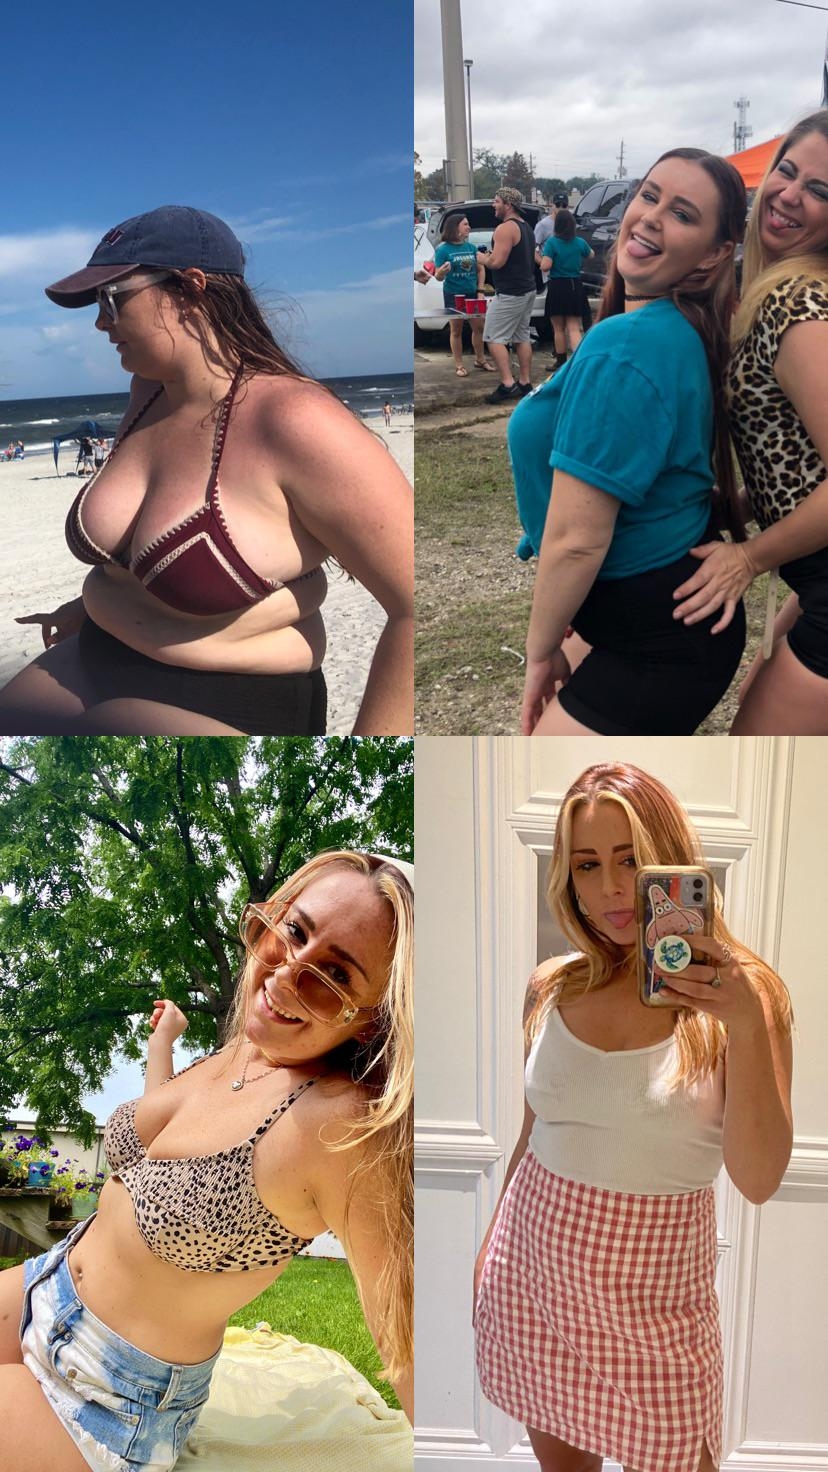 5'6 Female Before and After 49 lbs Weight Loss 187 lbs to 138 lbs